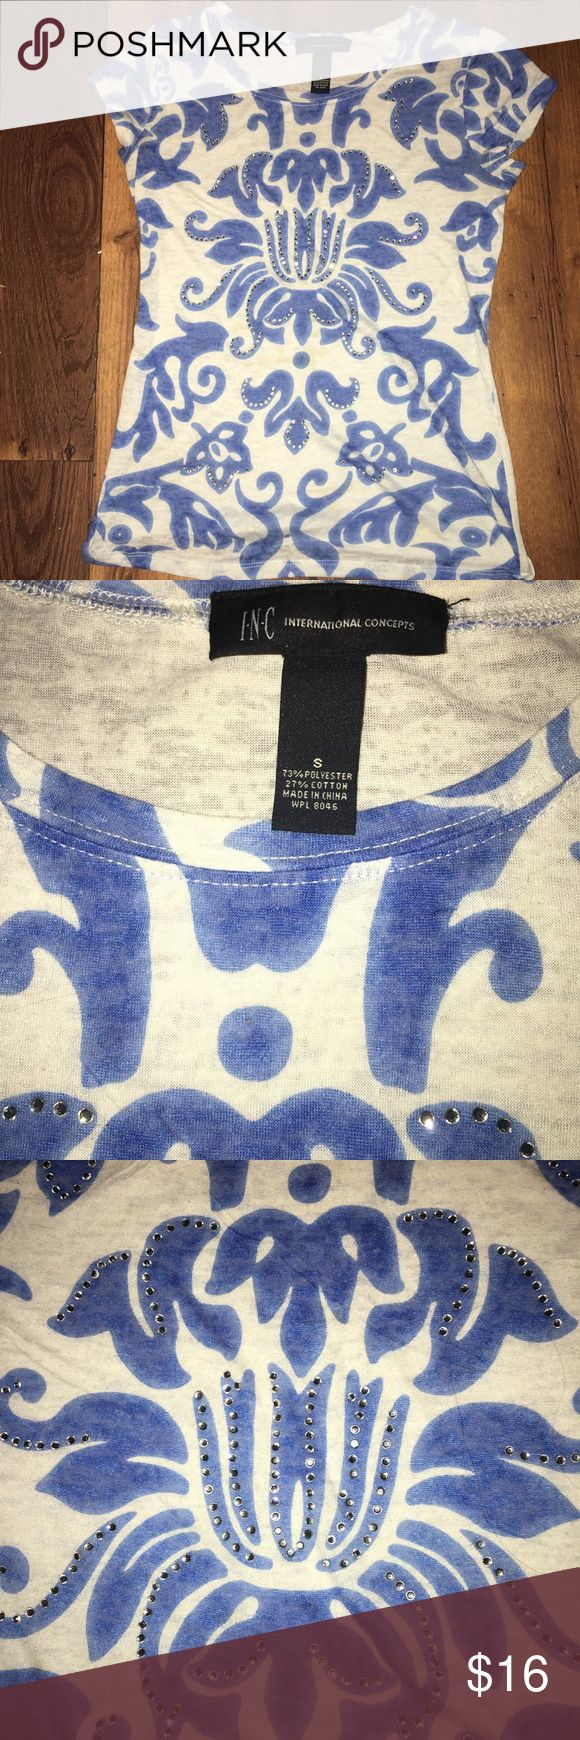 I.N.C. burn out Tee with rhinestone accents. I.N.C. Burnout Tee with fluer de lis and rhinestone accents. Gorgeous tee, bought for my middle daughter but never worn. Thinner material with a feminine design. Great to layer a Cami underneath. In excellent NWOT condition.                                                                      📦📫  Same or next day shipping from Tennessee. (Weekends and holidays excluded) ☀️ Items  $10 and under firm unless bundled. INC International Concepts Tops…